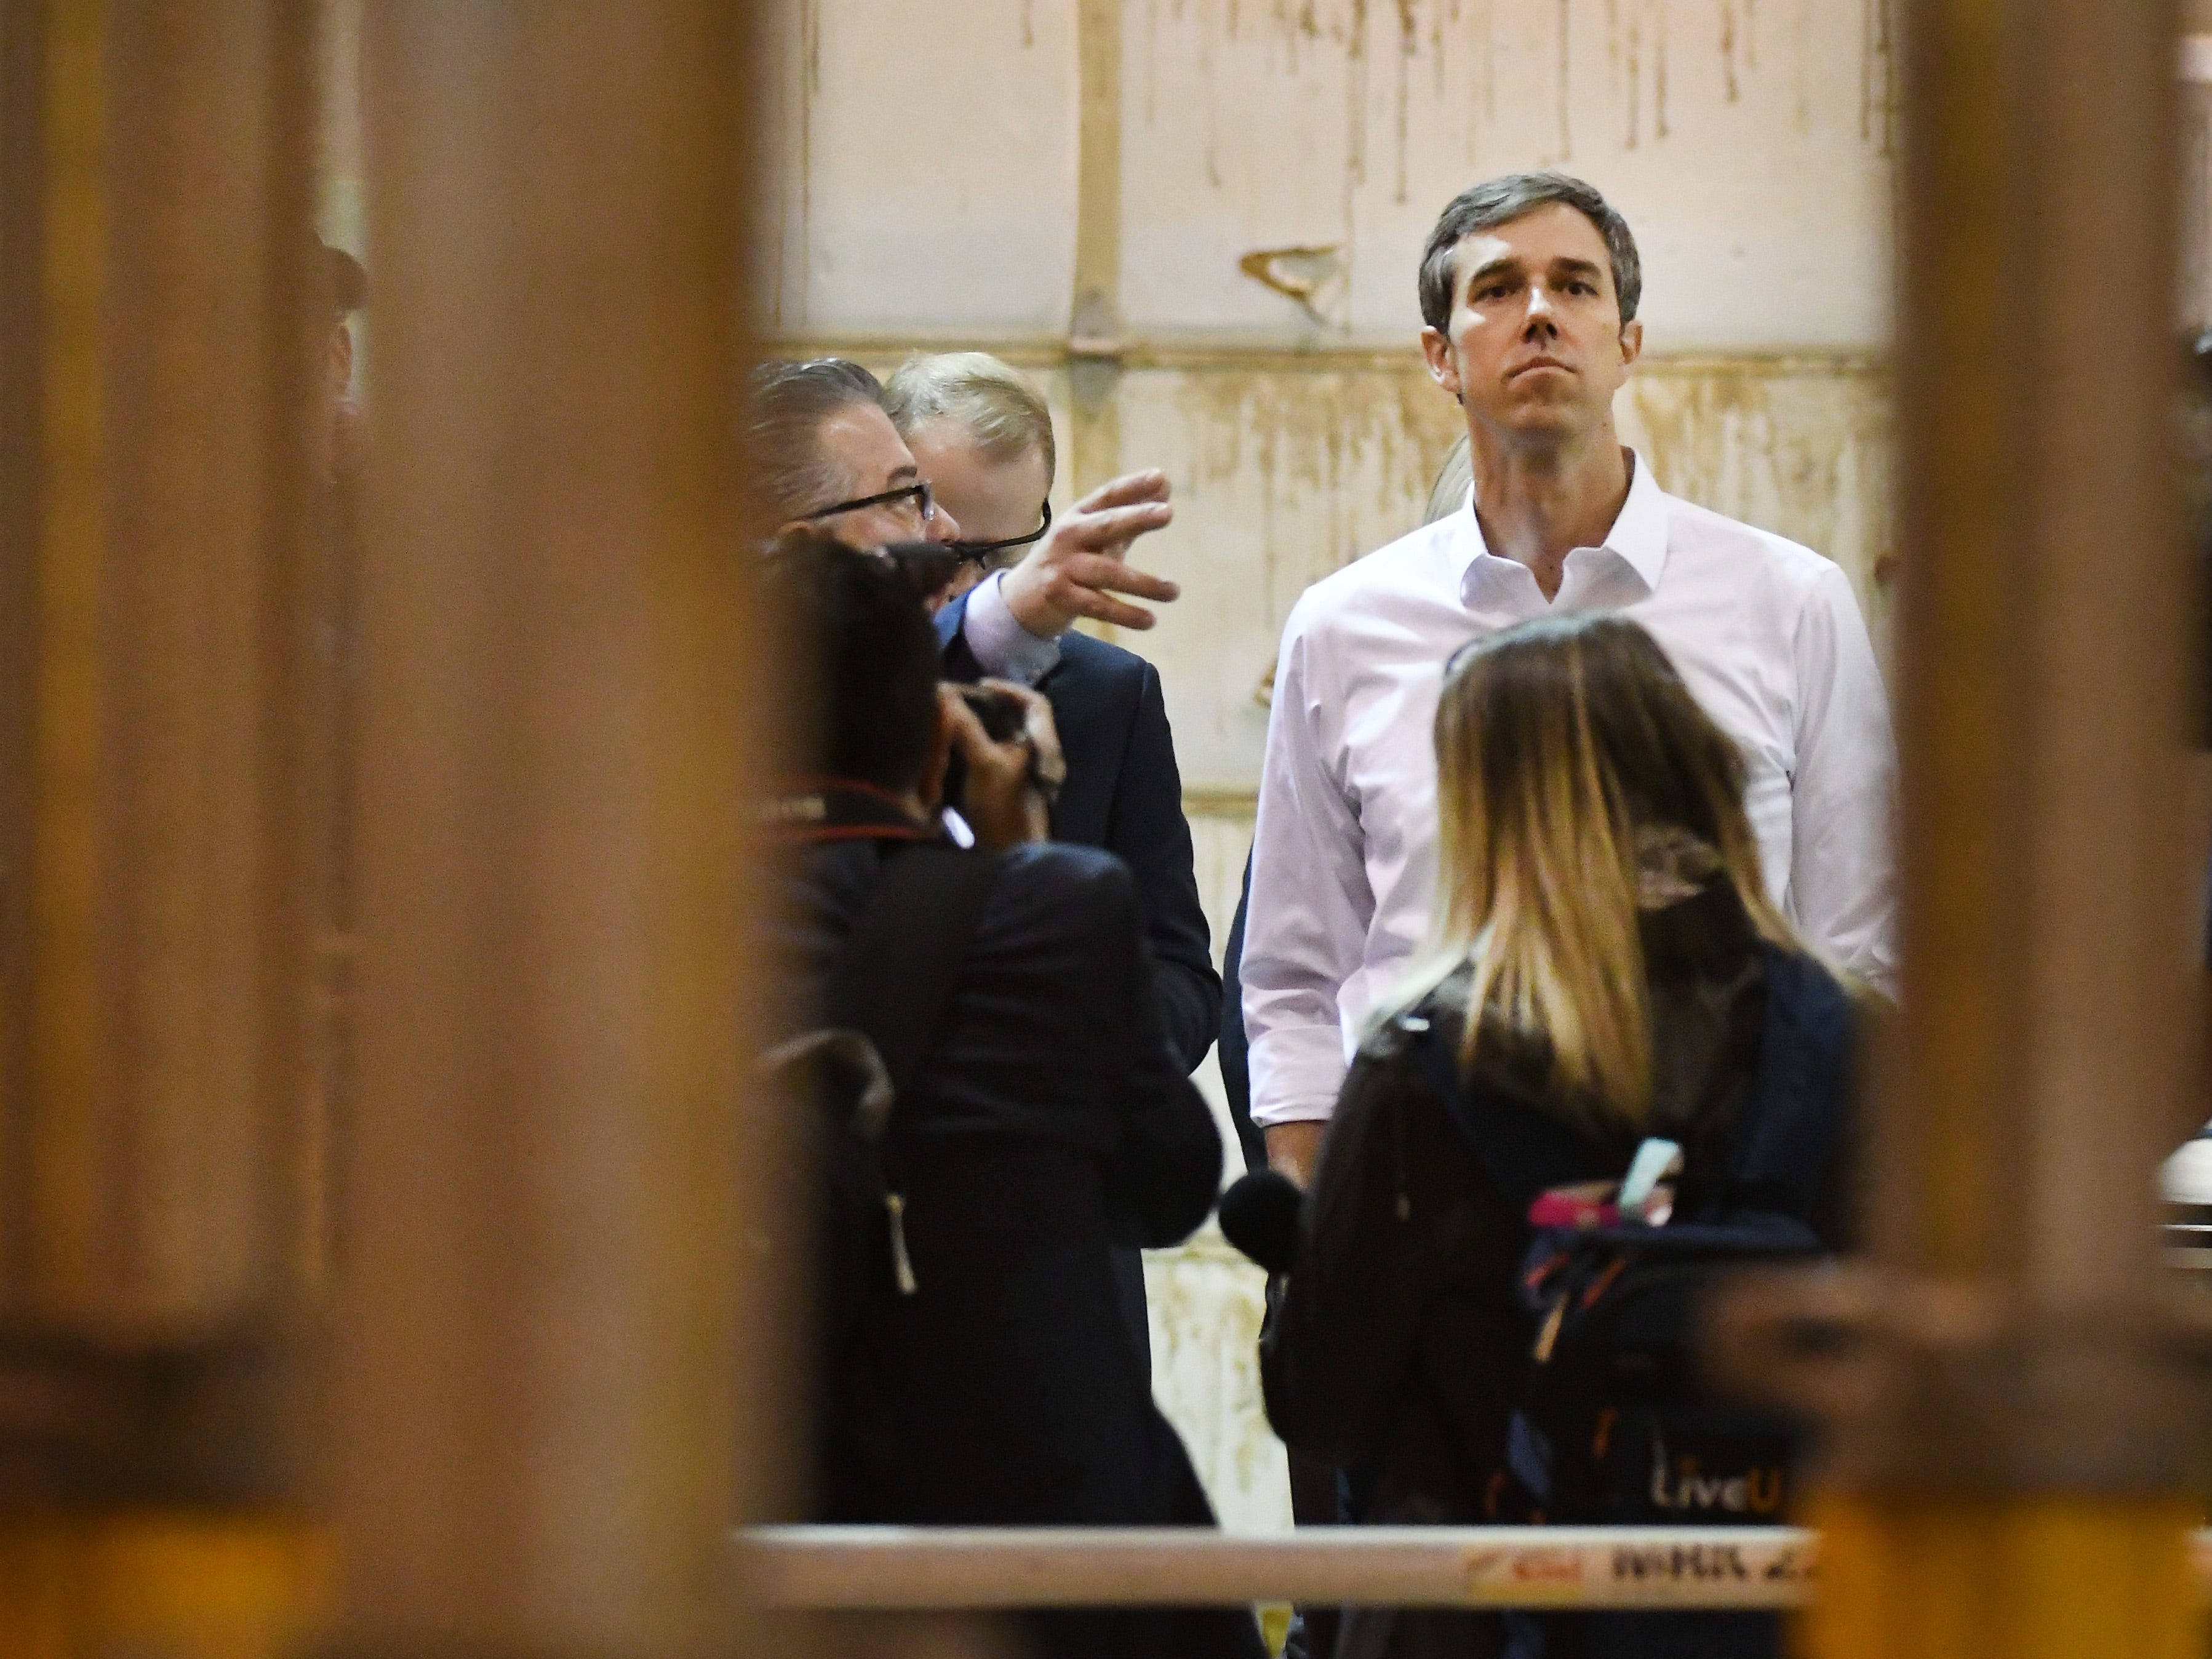 Democratic U.S. presidential candidate Beto O'Rourke gets a tour of the Detroit Carpenters Training Center.